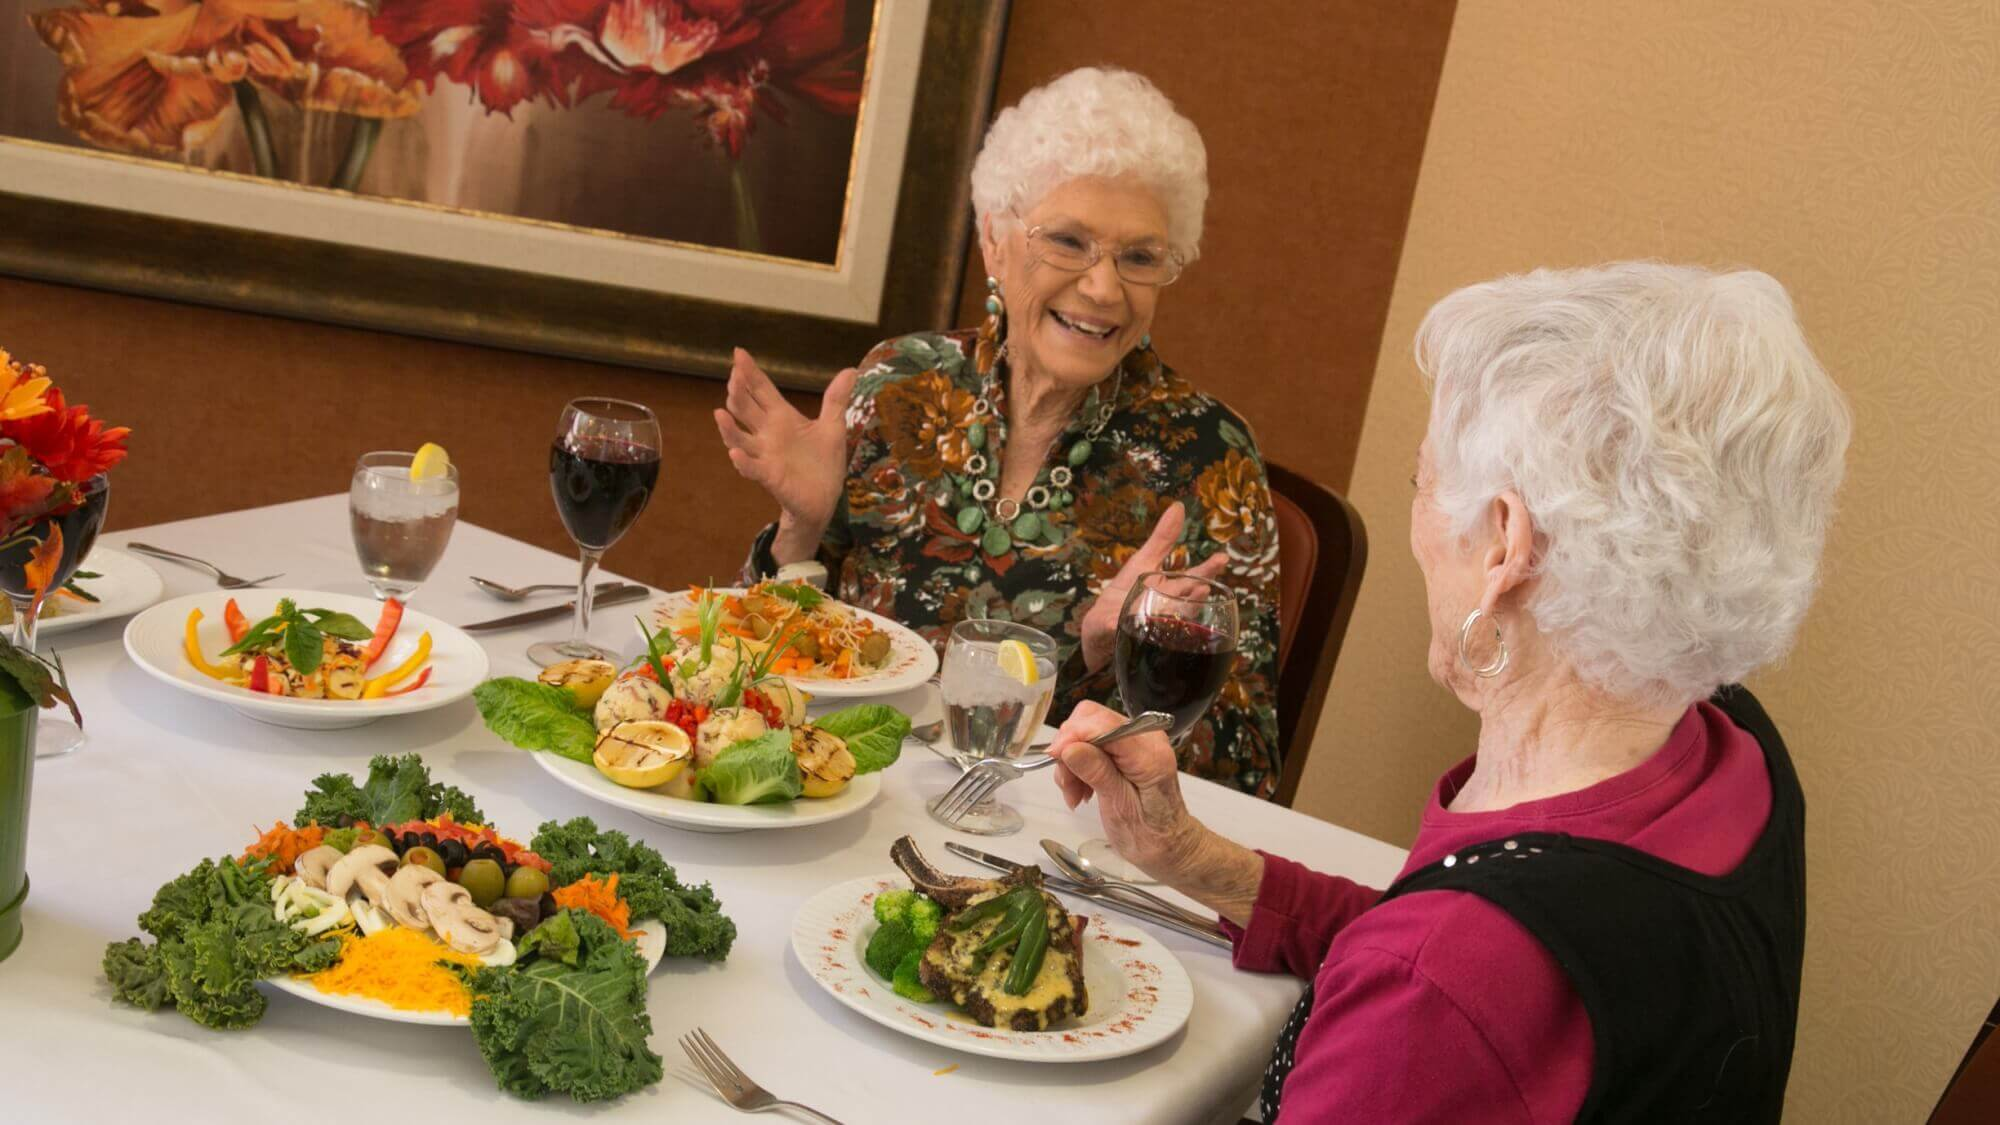 Two ladies dine together and share laughs over a glass of wine during fine dining at Lakeline Oaks in Cedar Park Texas.